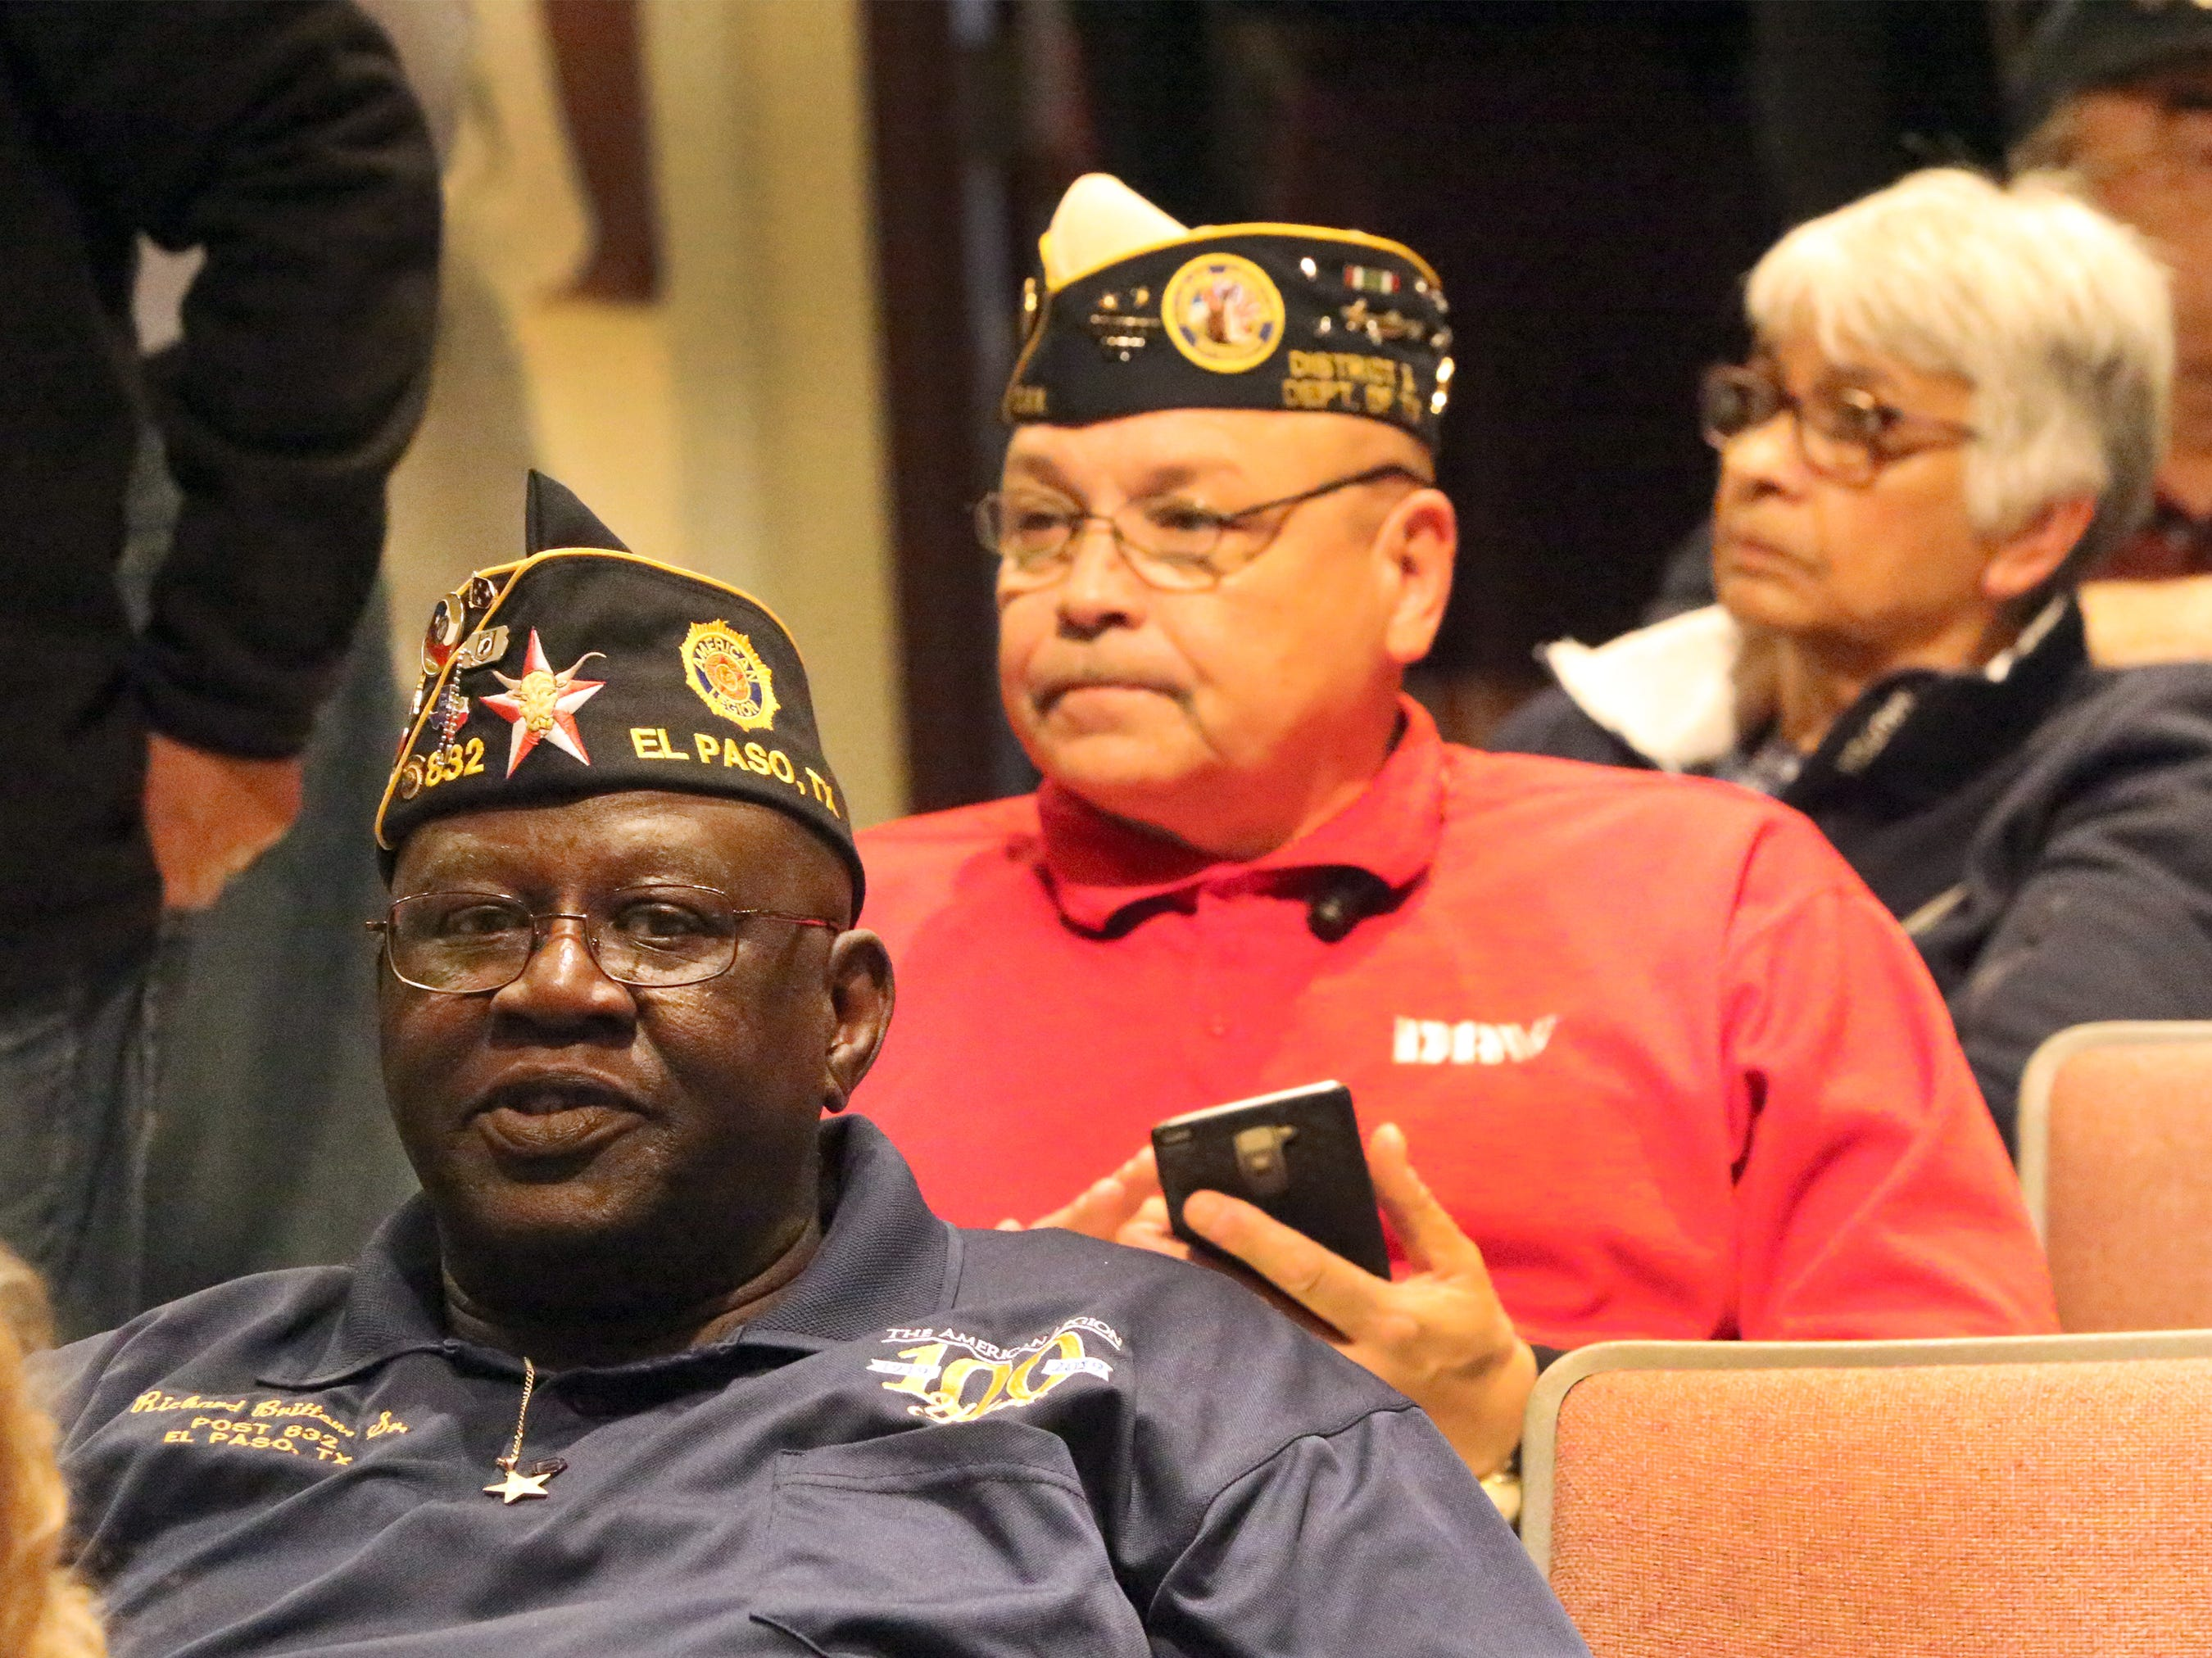 Military veterans Richard Britton, left, and David Garcia attended Beto O'Rourke's final town hall on veterans issues Friday at Chapin High School.